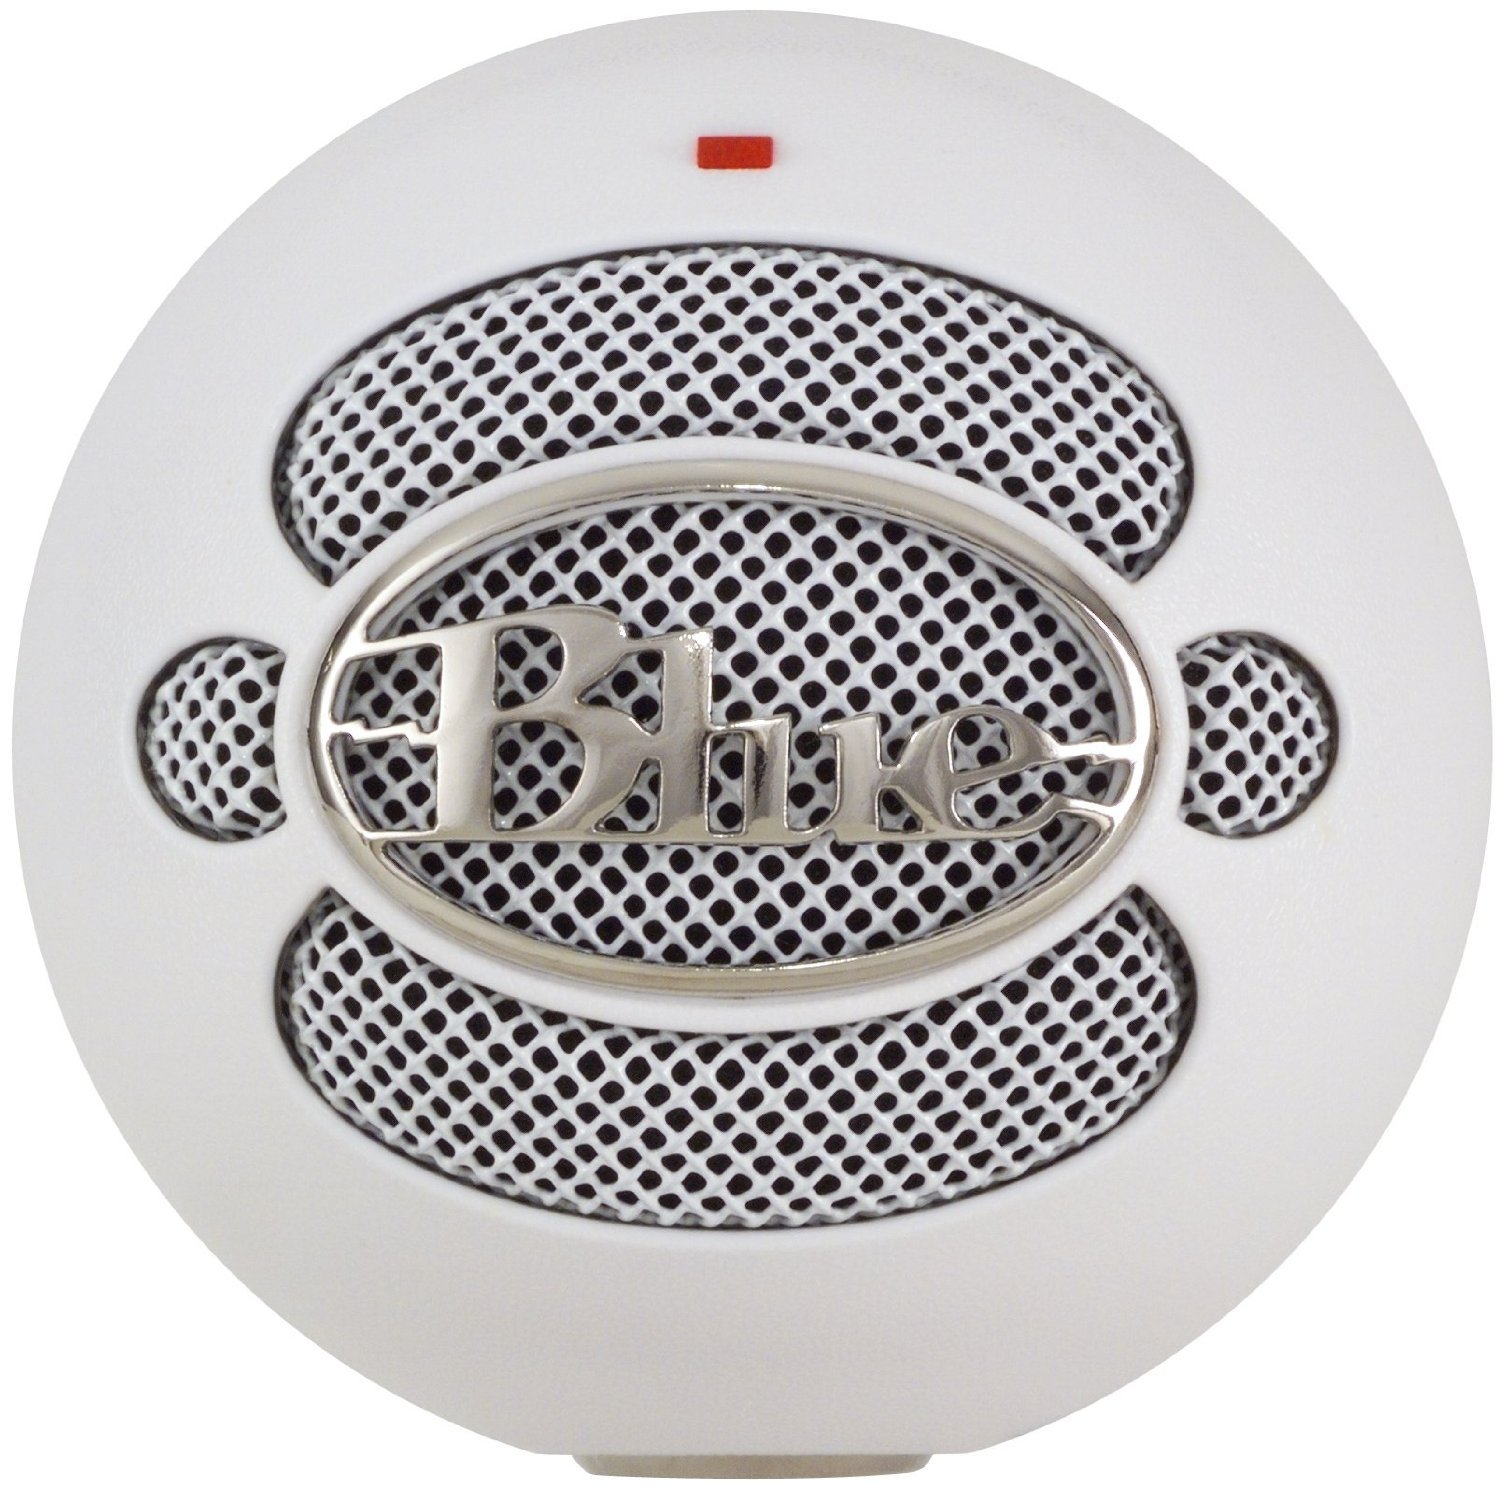 Blue Microphones Snowball USB Microphone (Textured White) for  image